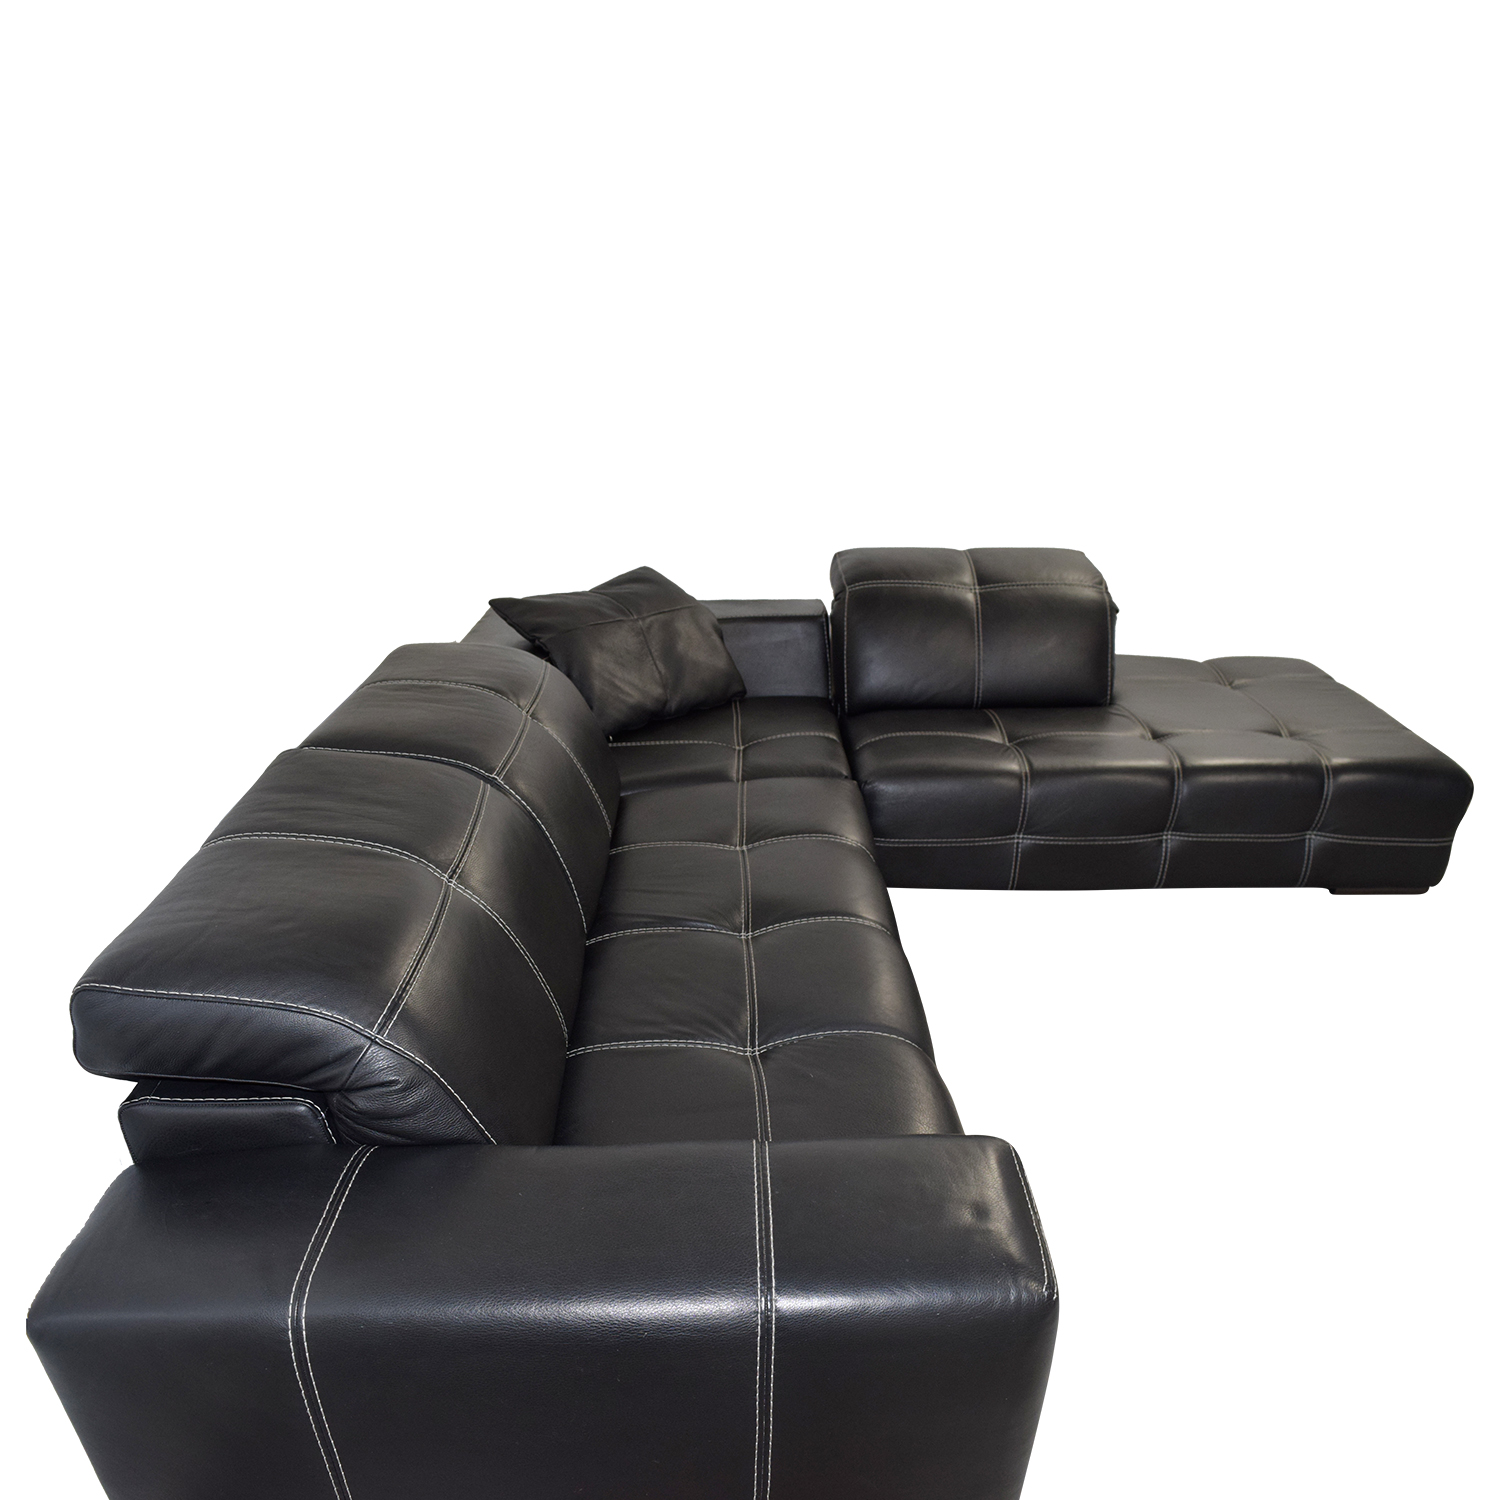 85 Off Natuzzi Natuzzi Black Italian Leather L Shaped